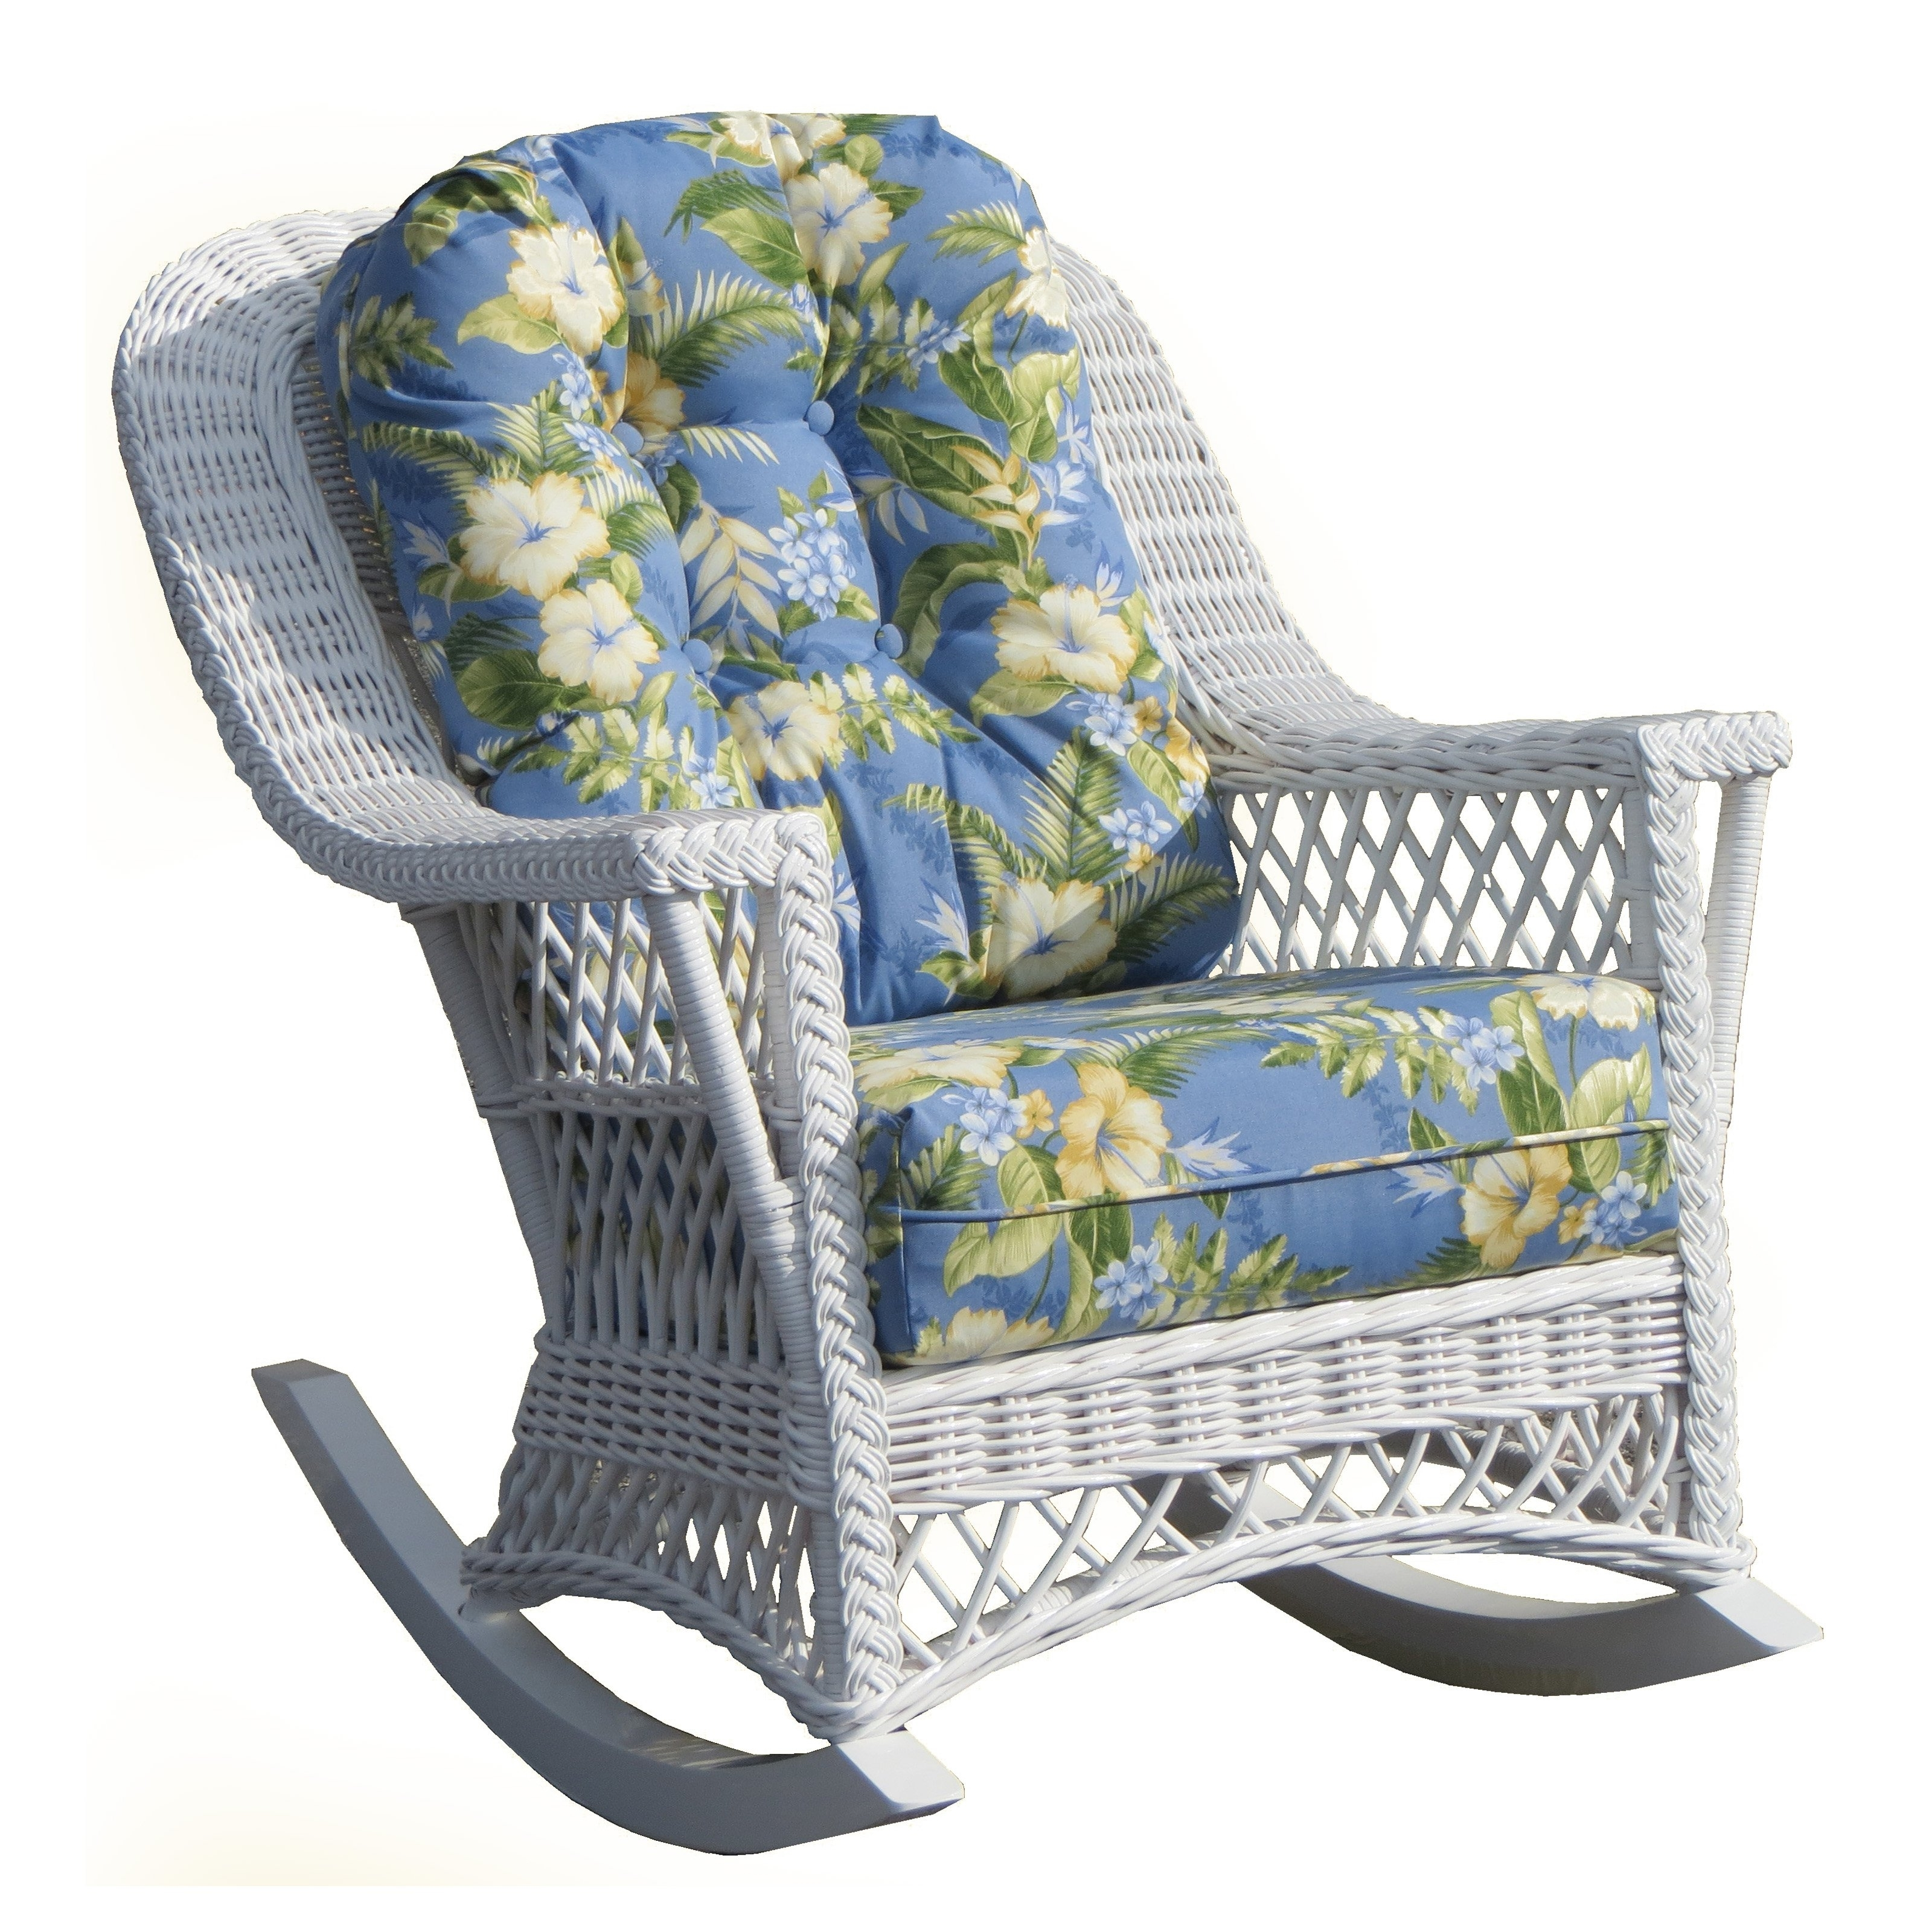 Used Patio Rocking Chairs For Most Up To Date White Wicker Rocking Chairs Porch Martha Stewart Chair Indoor For (View 11 of 15)